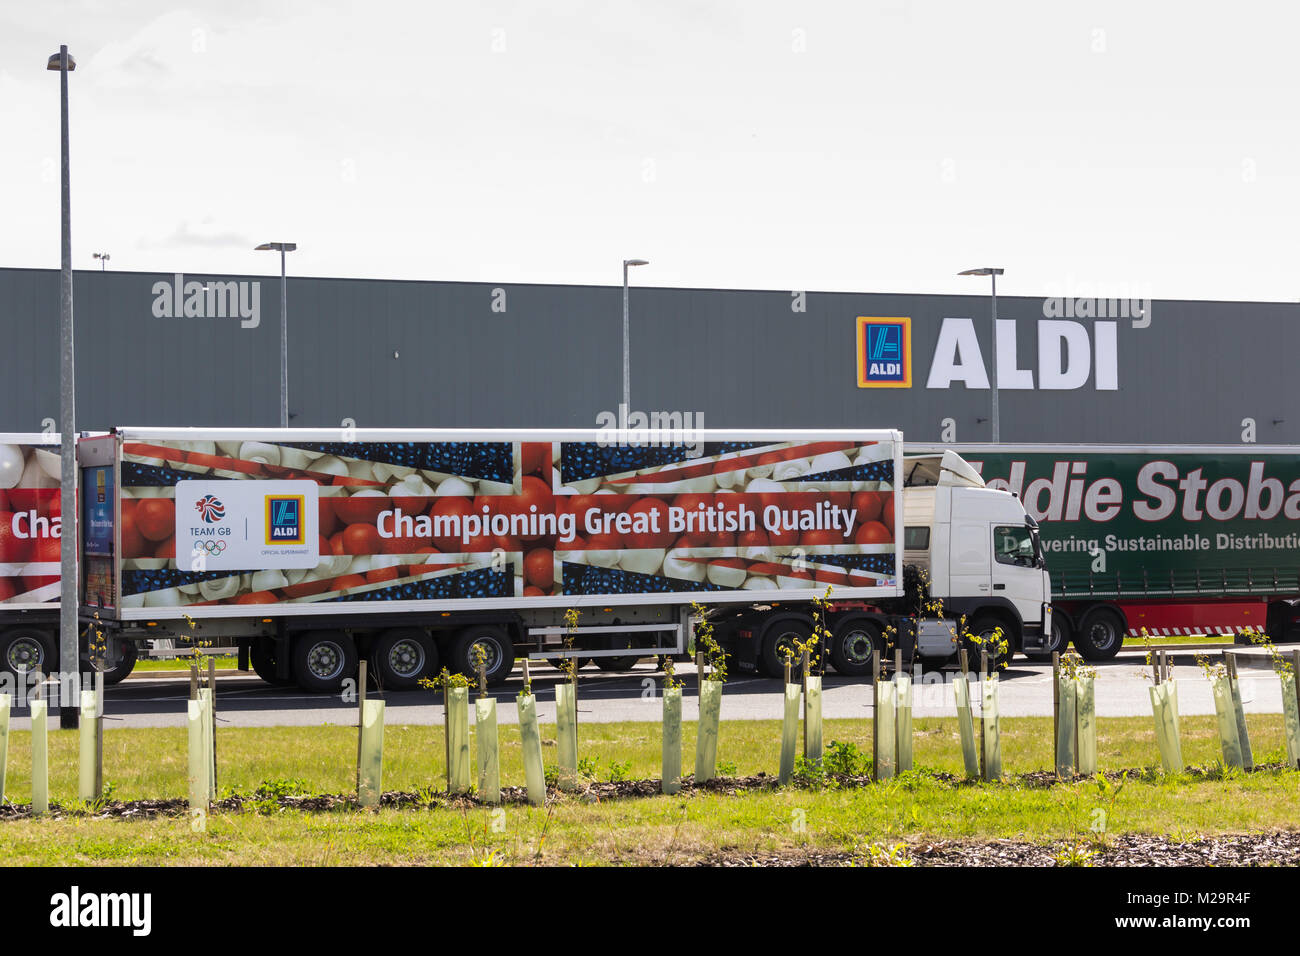 Aldi and Eddie Stobart branded articulated lorries outside the new Aldi Distribution warehouse at Logistics North, - Stock Image